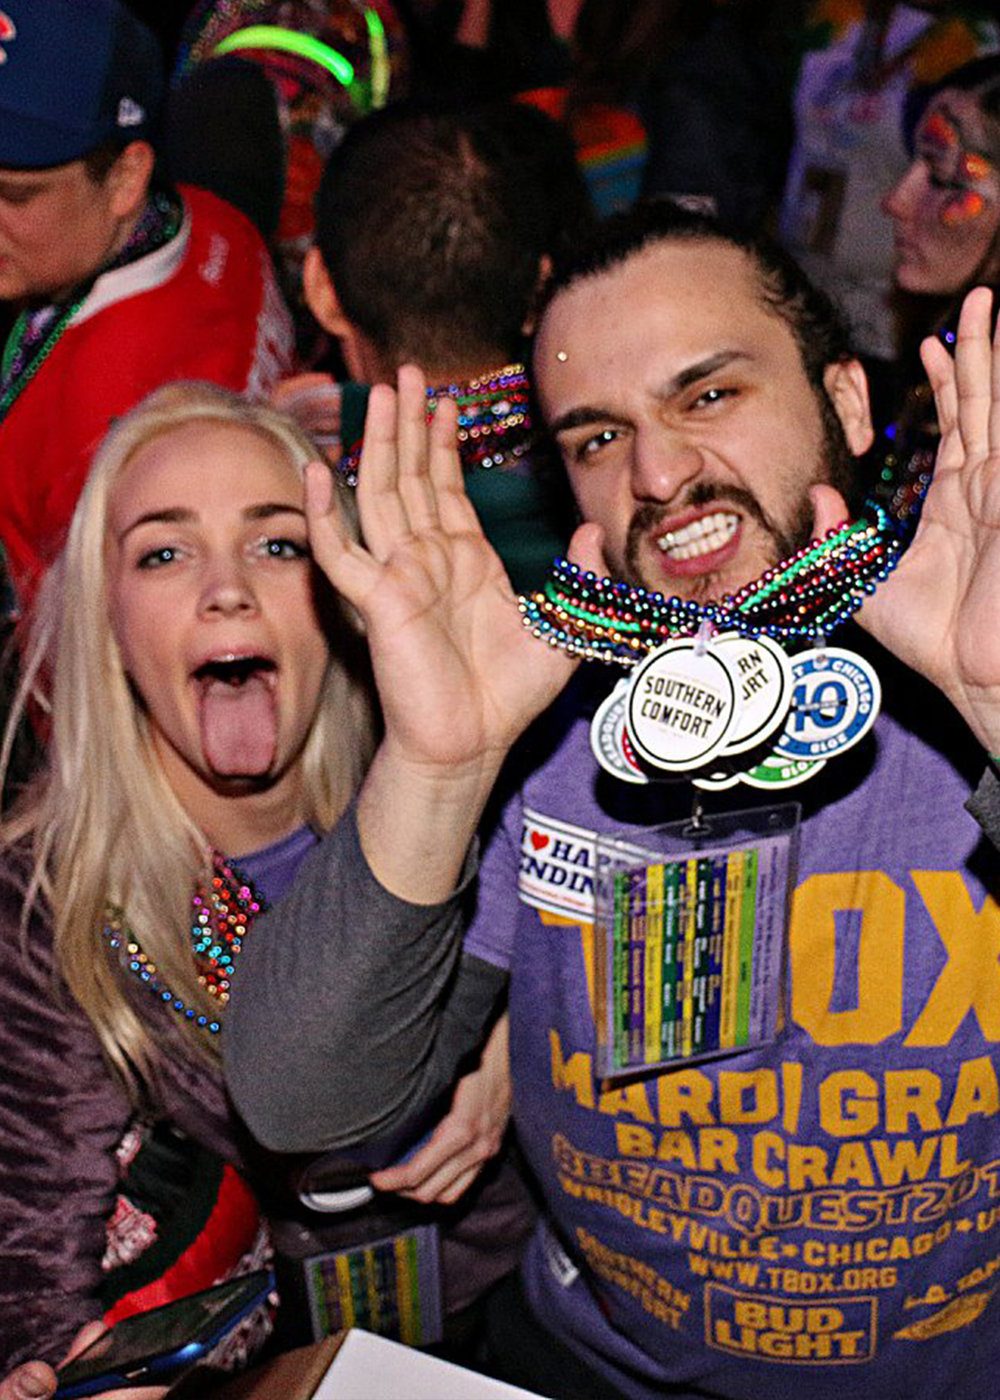 TBOX has become the biggest bar crawl in Chicago. -